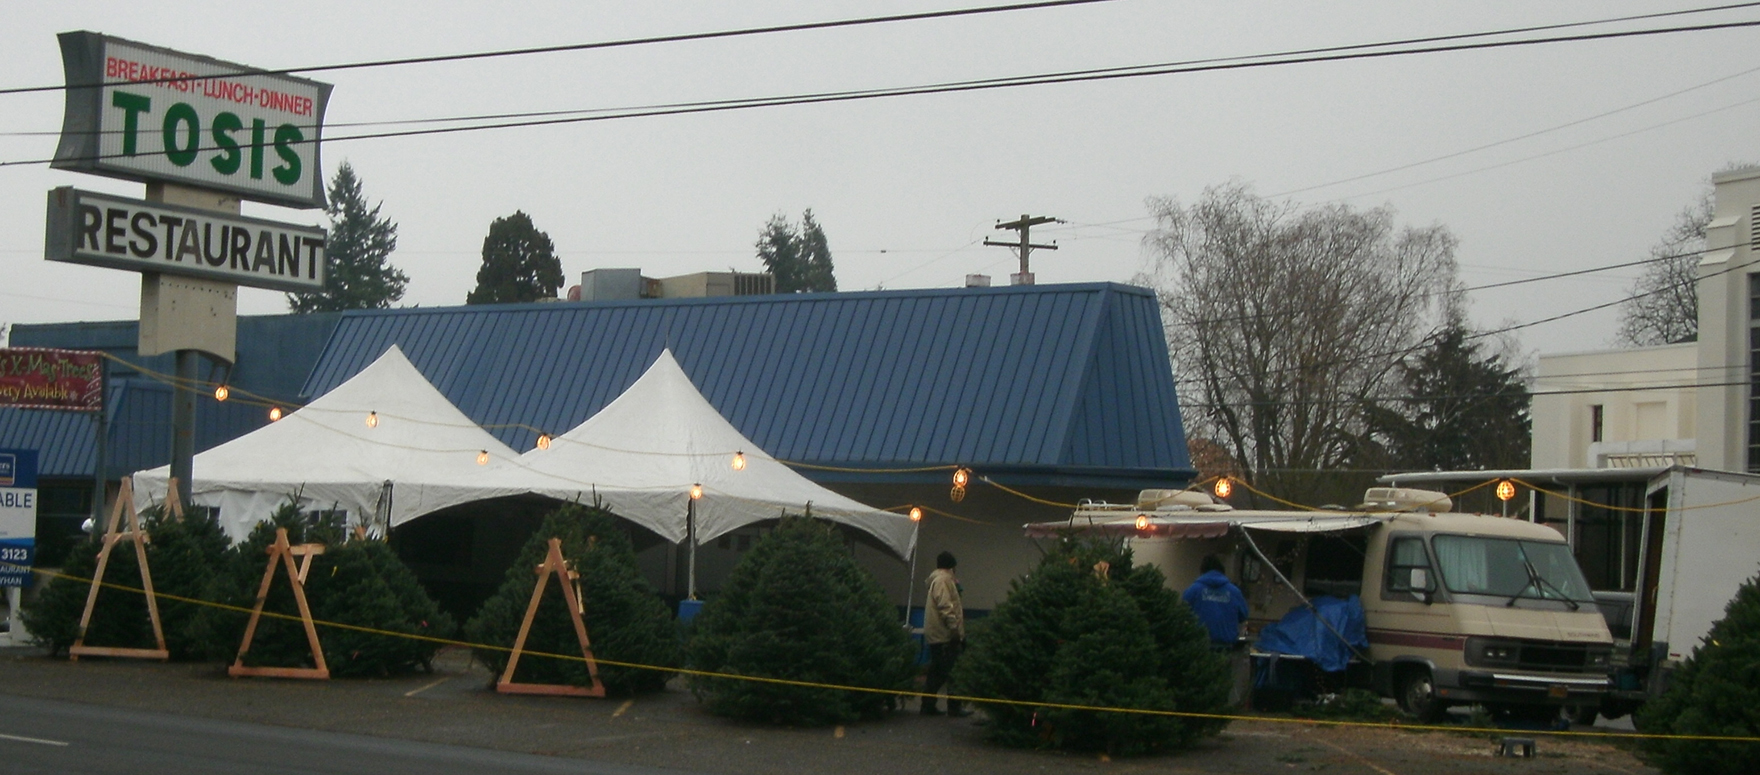 Tosis Restaurant for four decades and vacant for most of 2013, property at Northeast 62nd Avenue and Sandy Boulevard, stirred with December Christmas tree sales. (Phill Colombo)